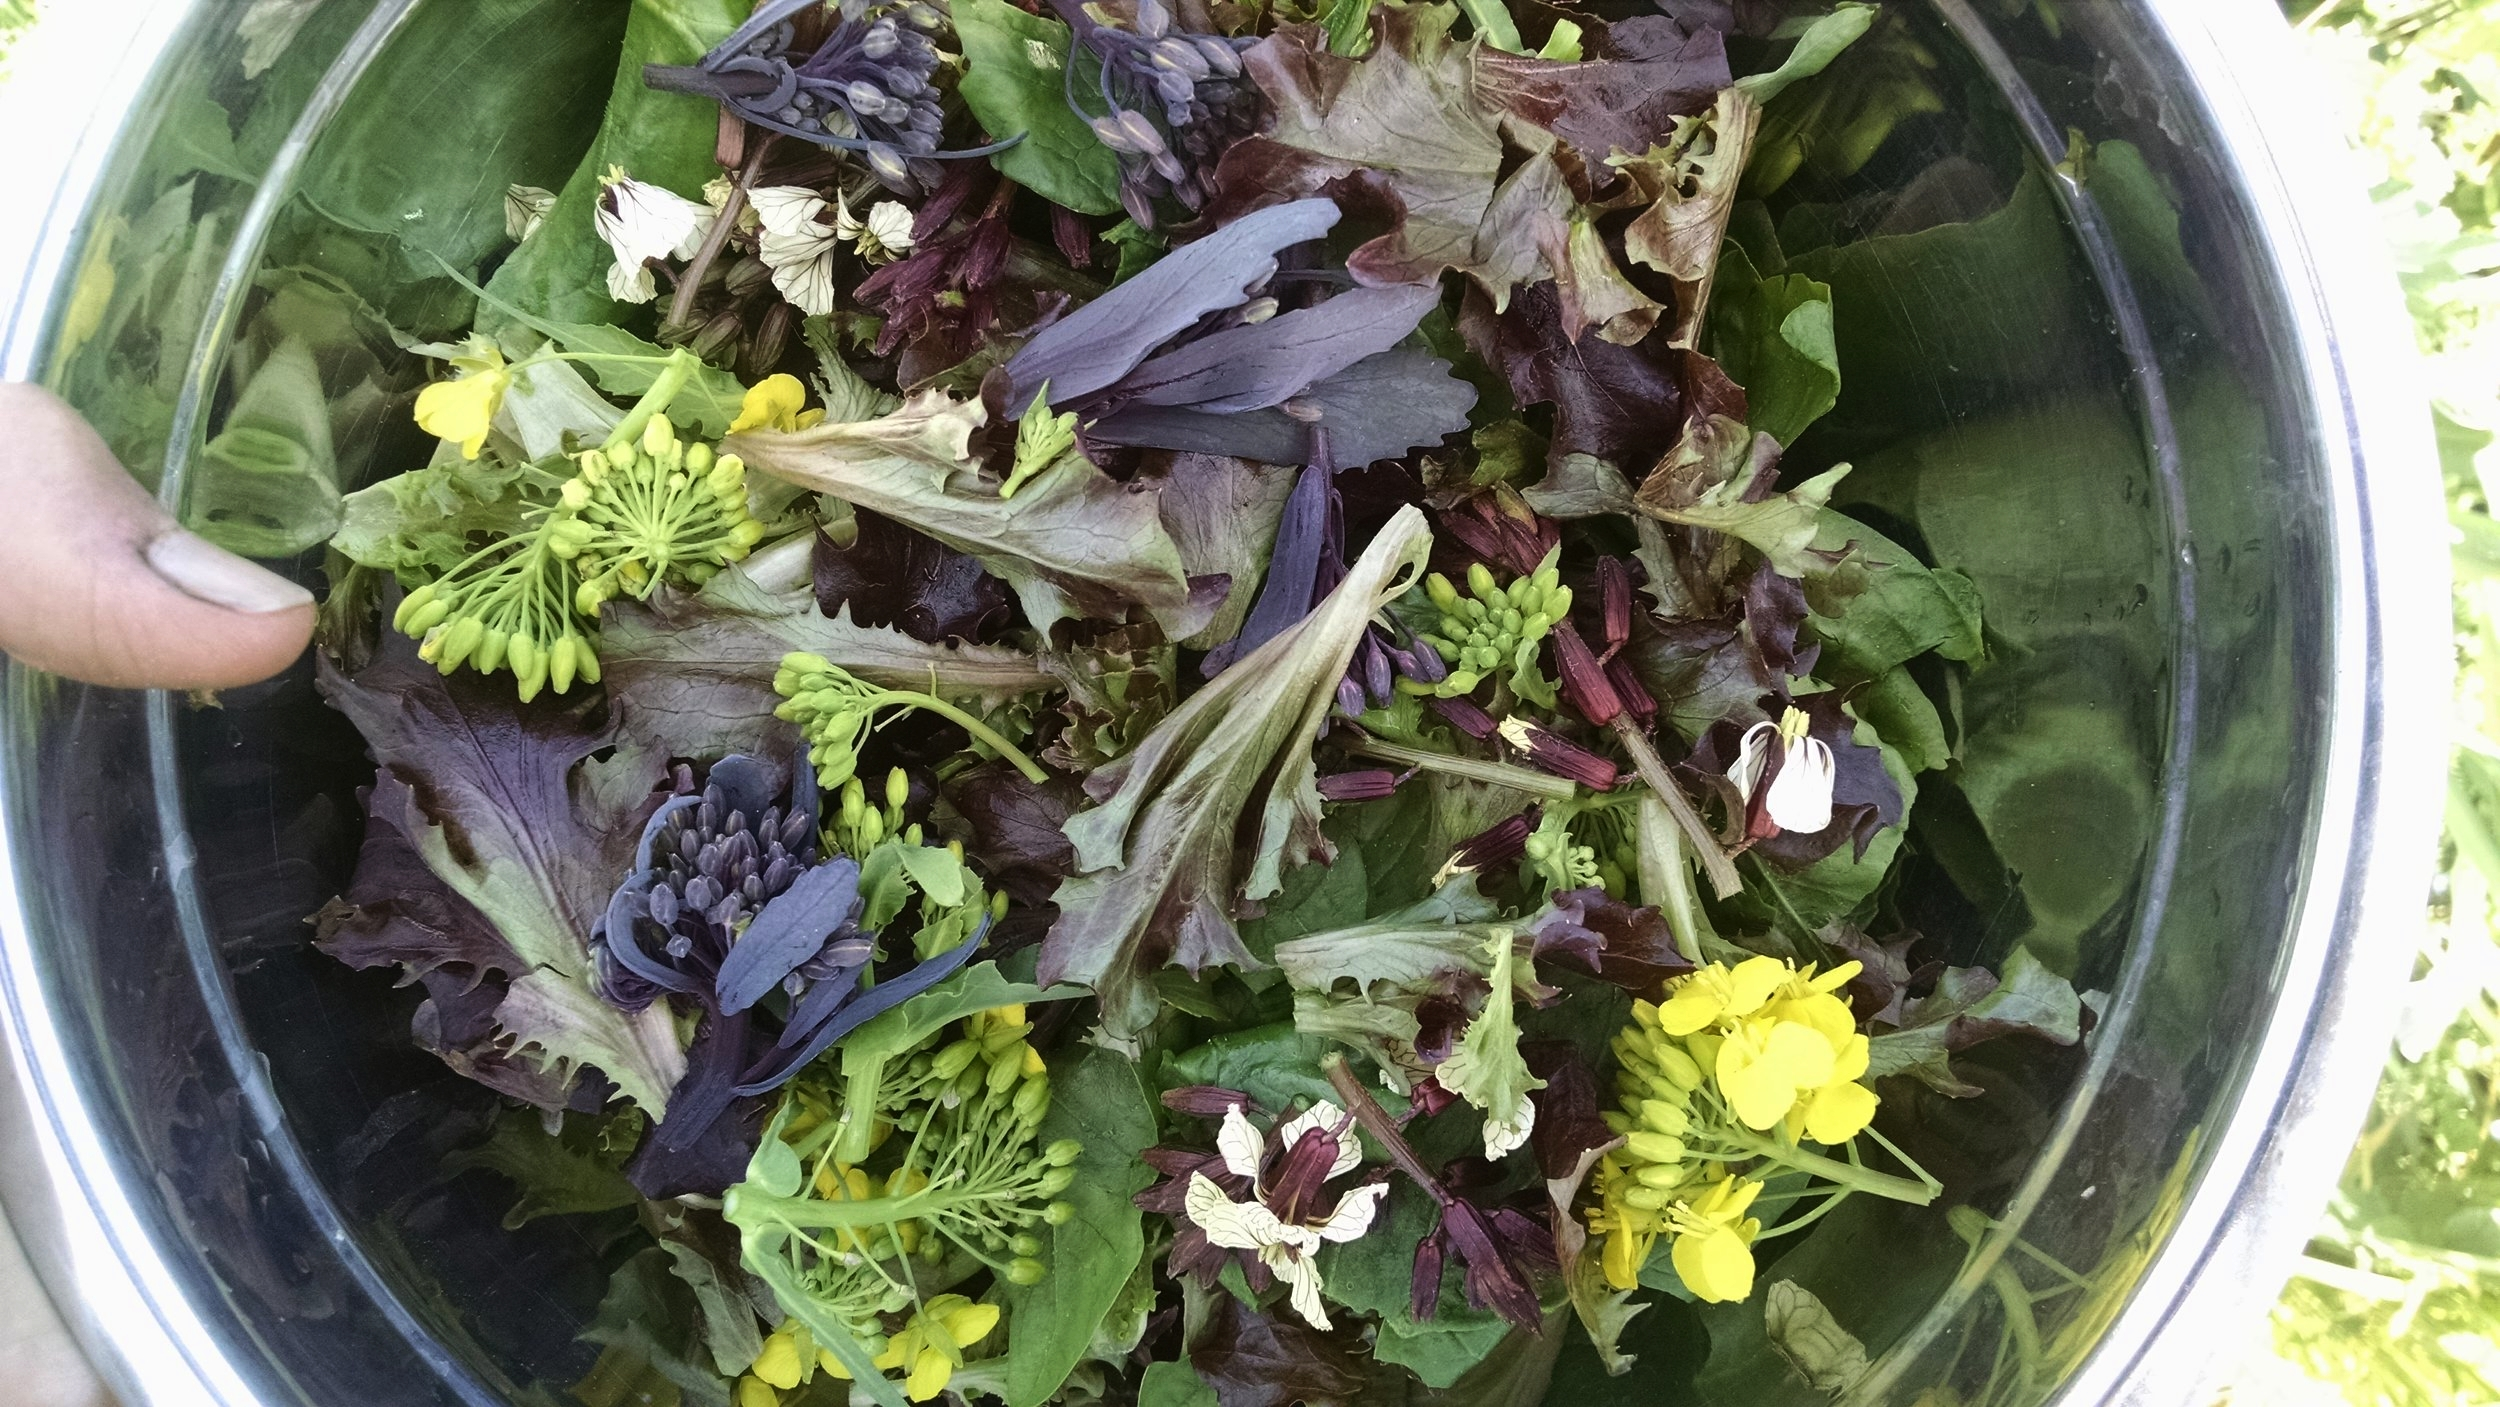 Freshly harvested salad for lunch: lettuce, spinach, arugula buds, tat tsoi flowers, red cabbage raab